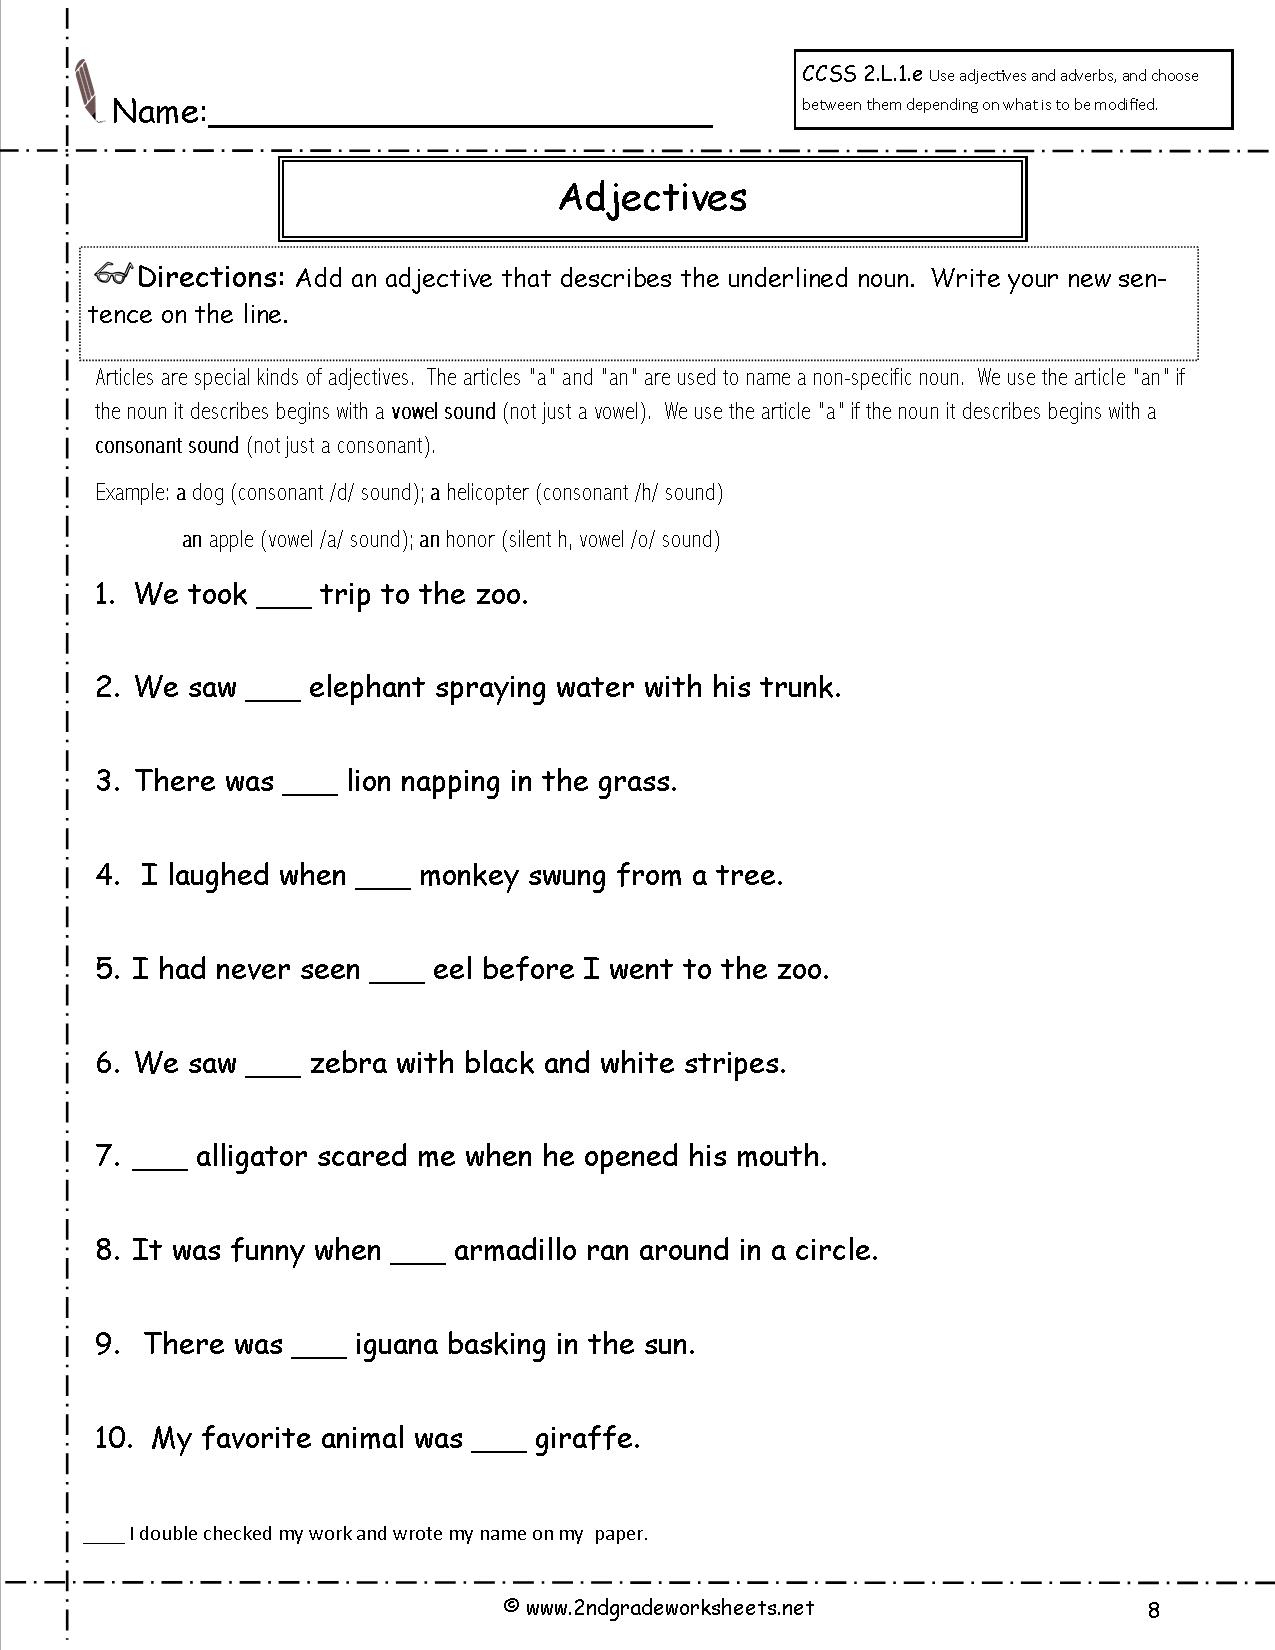 Free Language/grammar Worksheets And Printouts | English Worksheets Printables